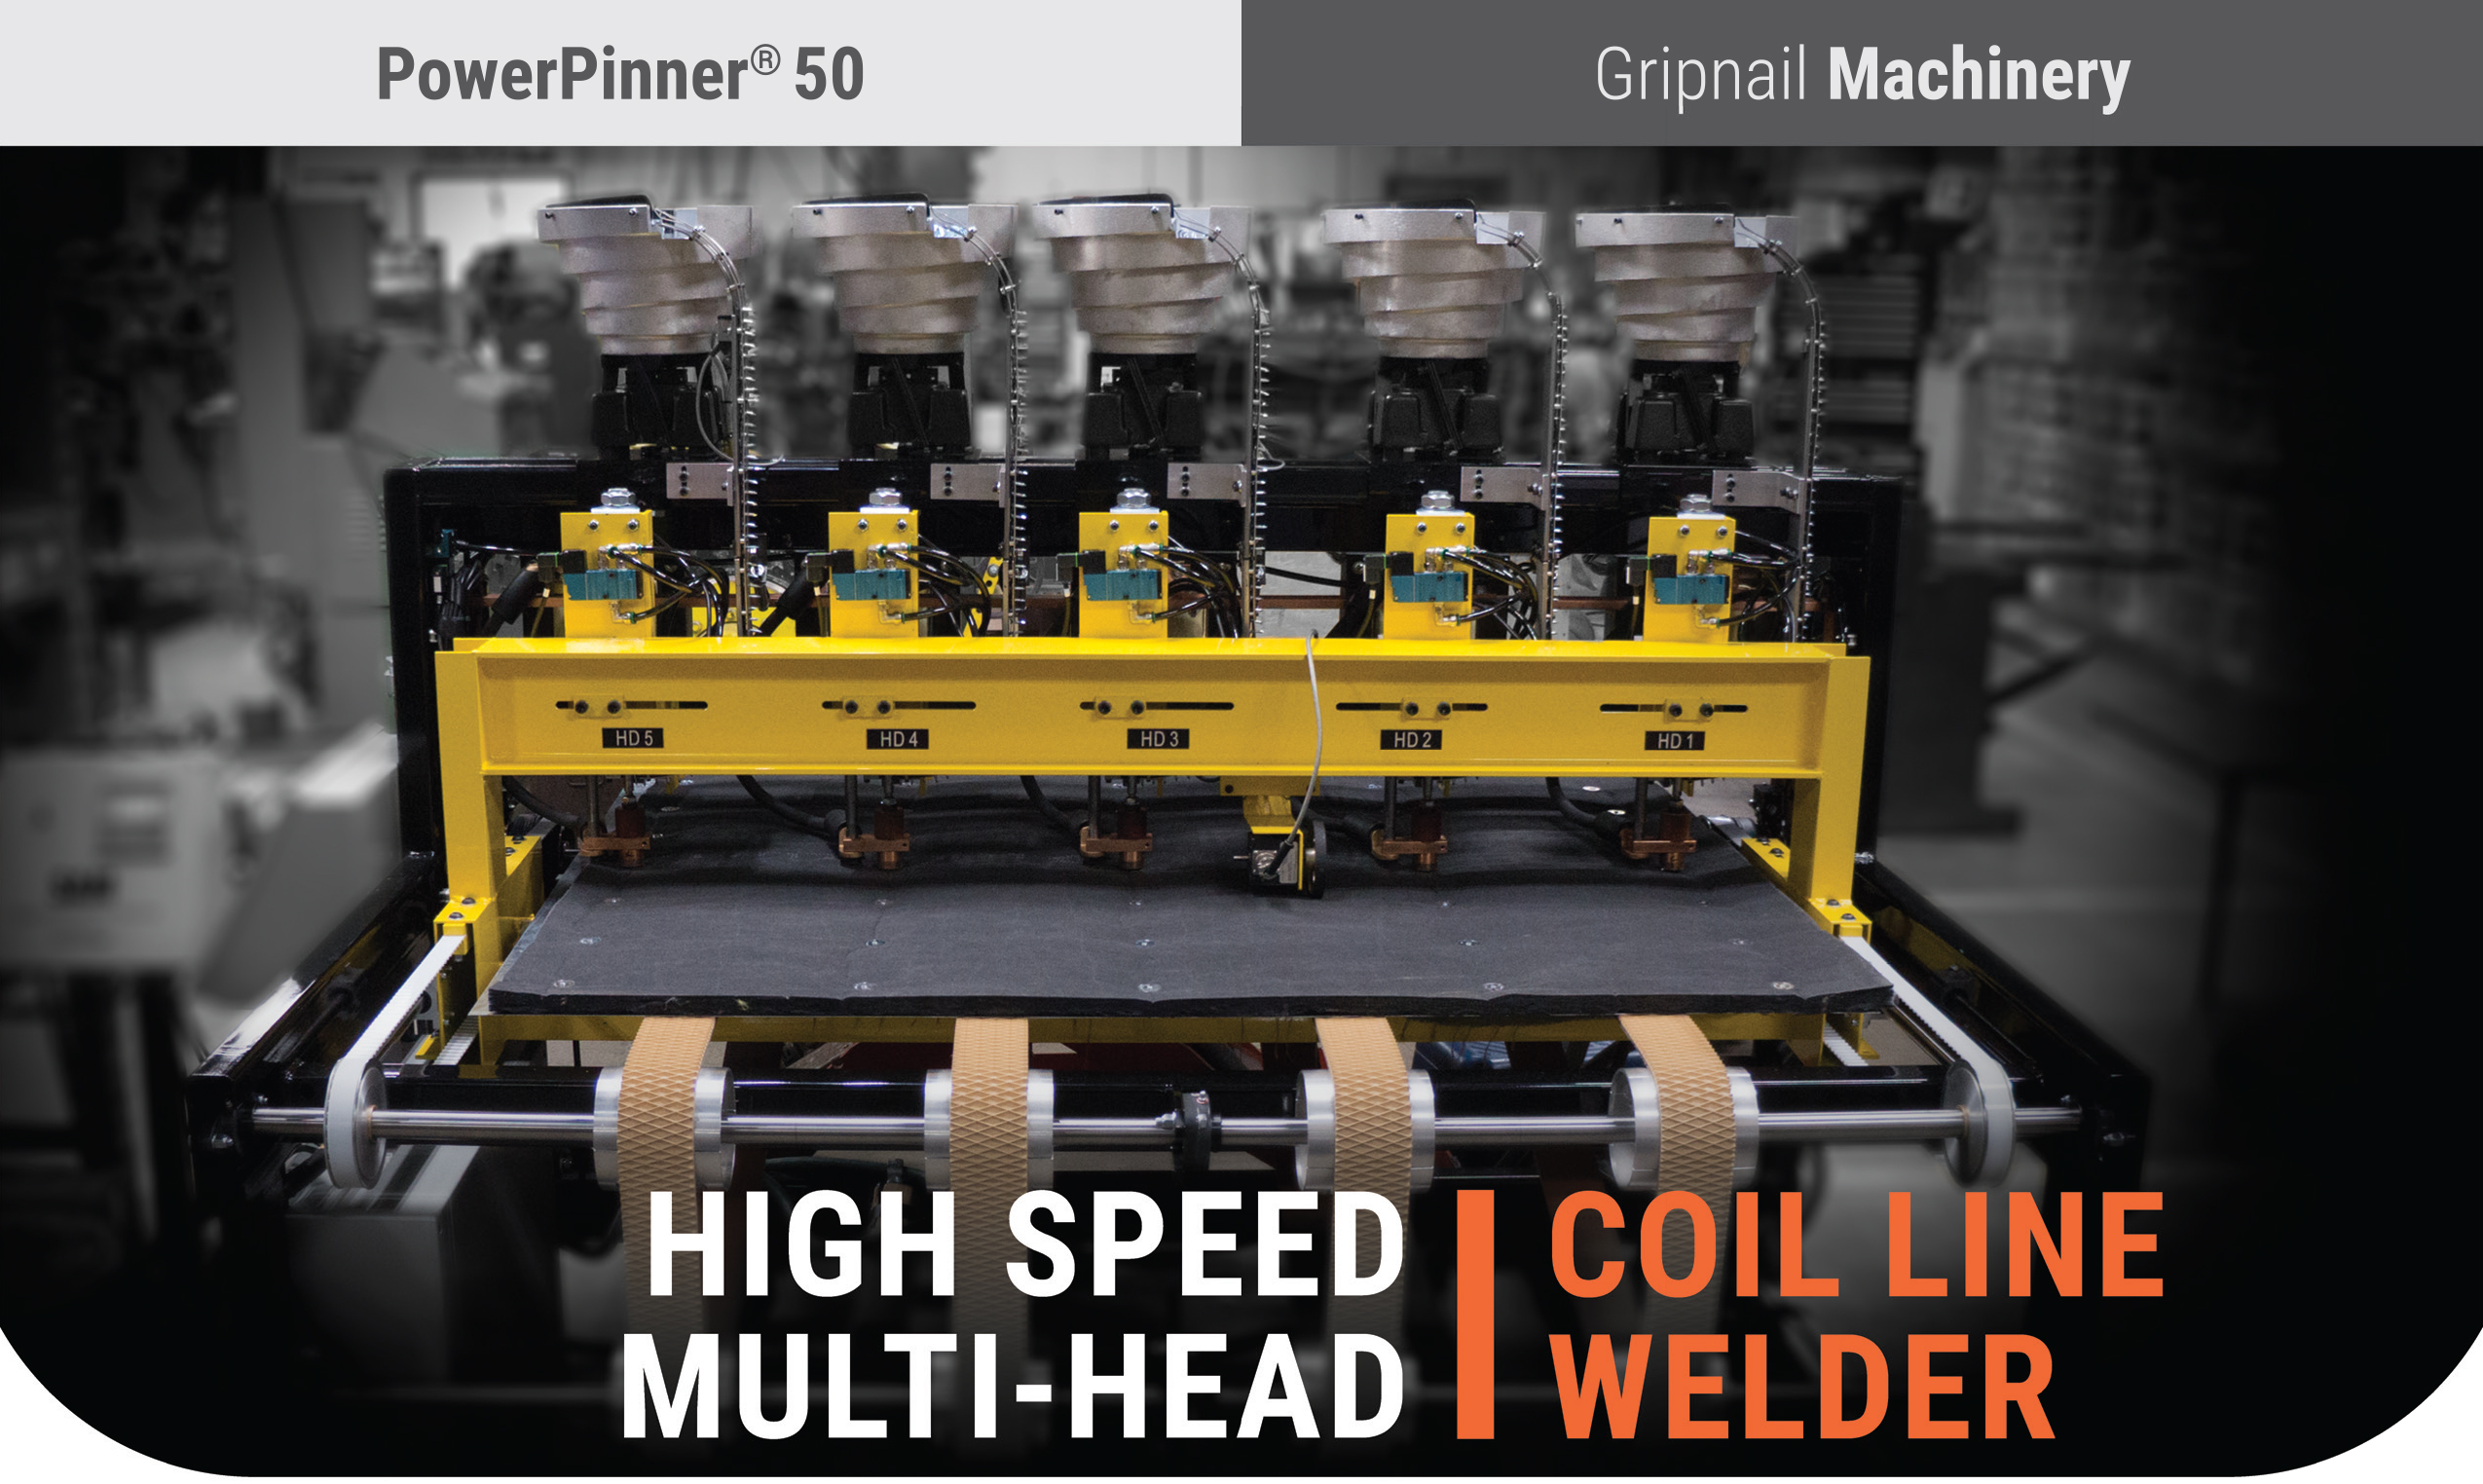 PowerPinner 50 multi head coil line pinner spotter (Main)